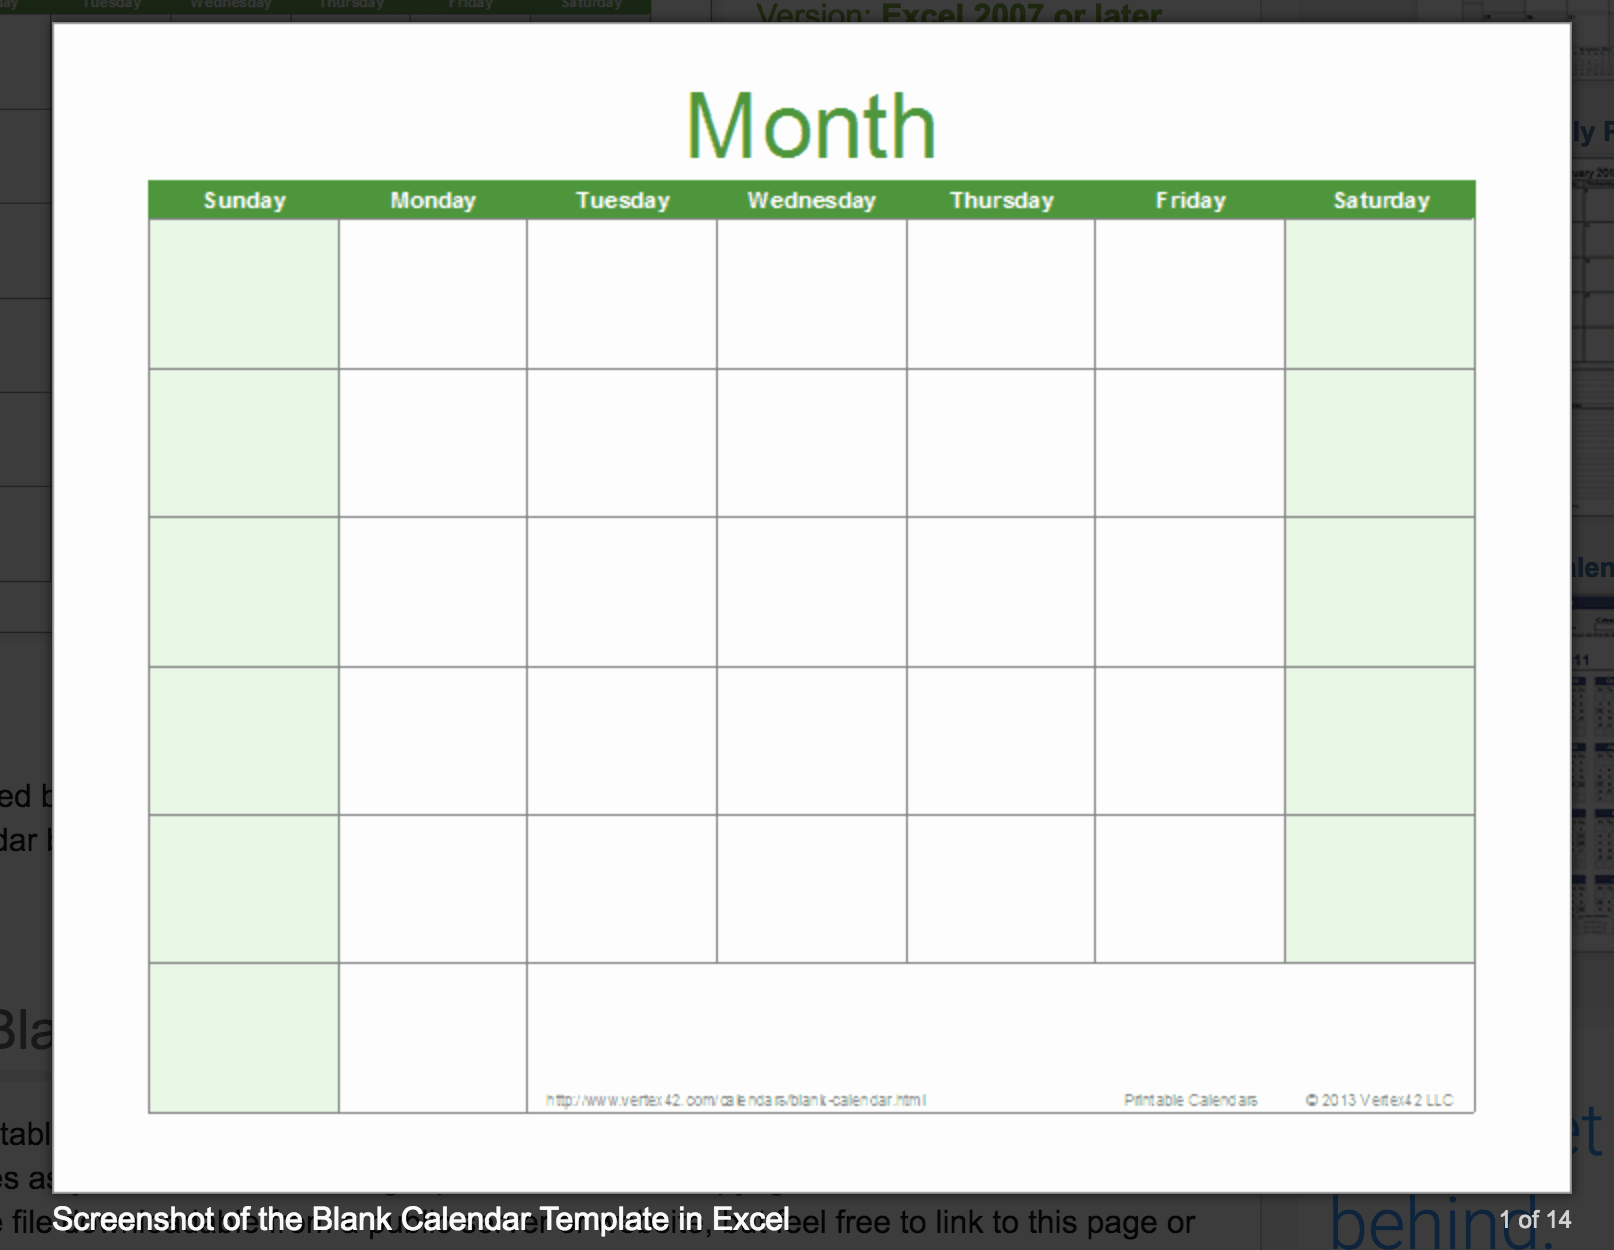 Monthly Calendar Template 2019 Awesome Blank Calendar Wonderfully Printable 2019 Templates